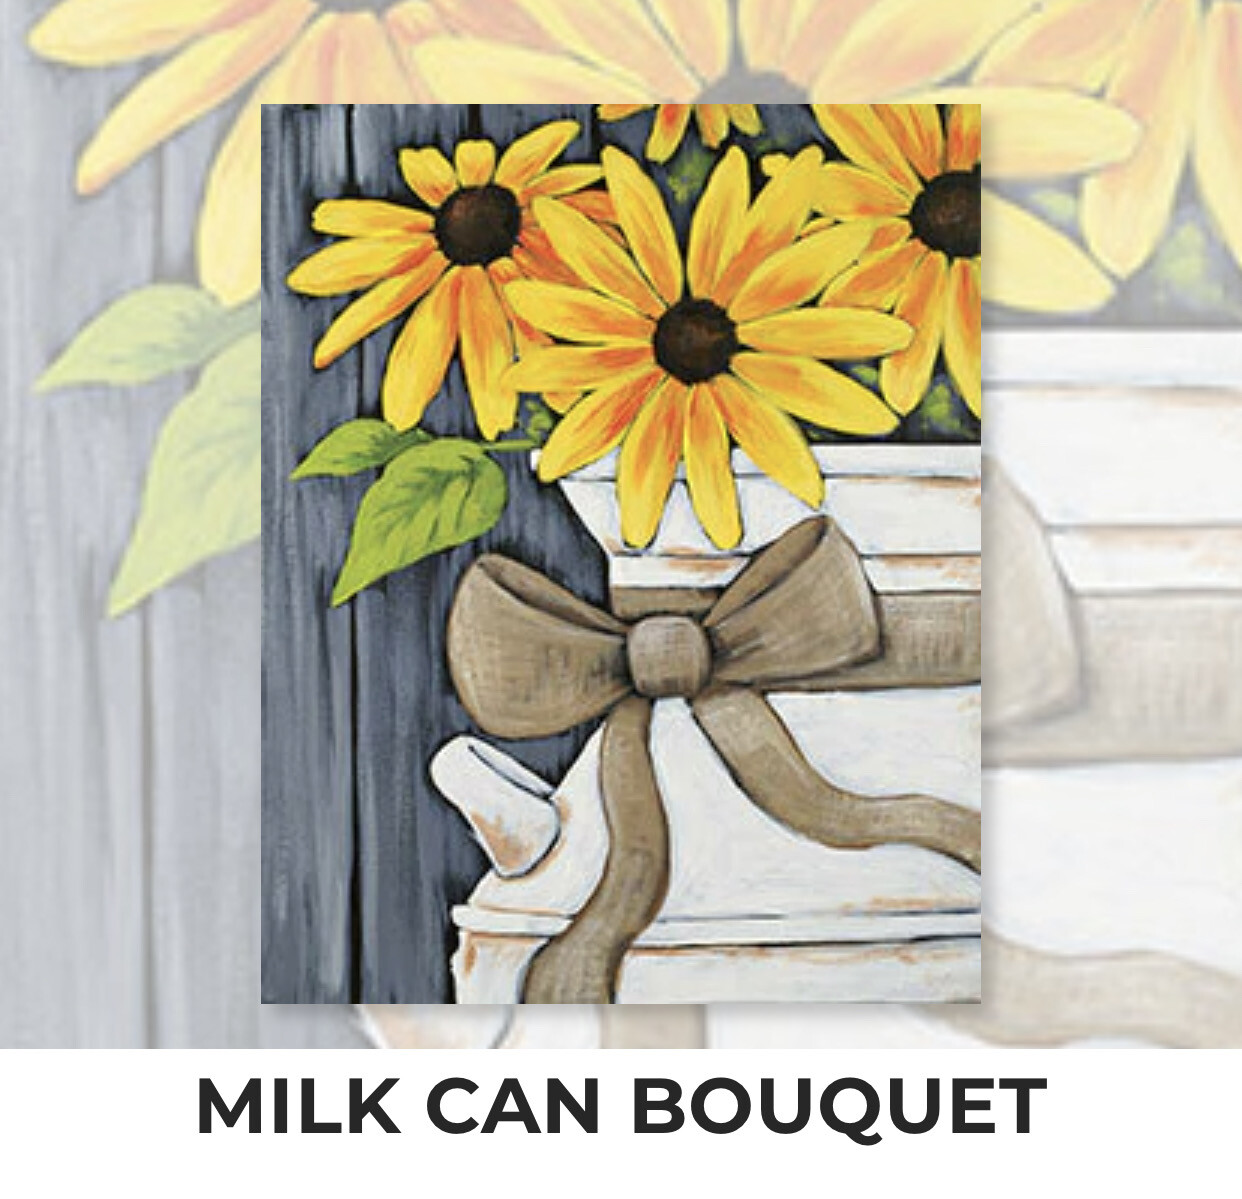 Milk Can Bouquet ADULT Acrylic Paint On Canvas DIY Art Kit - 3 Week Special Order